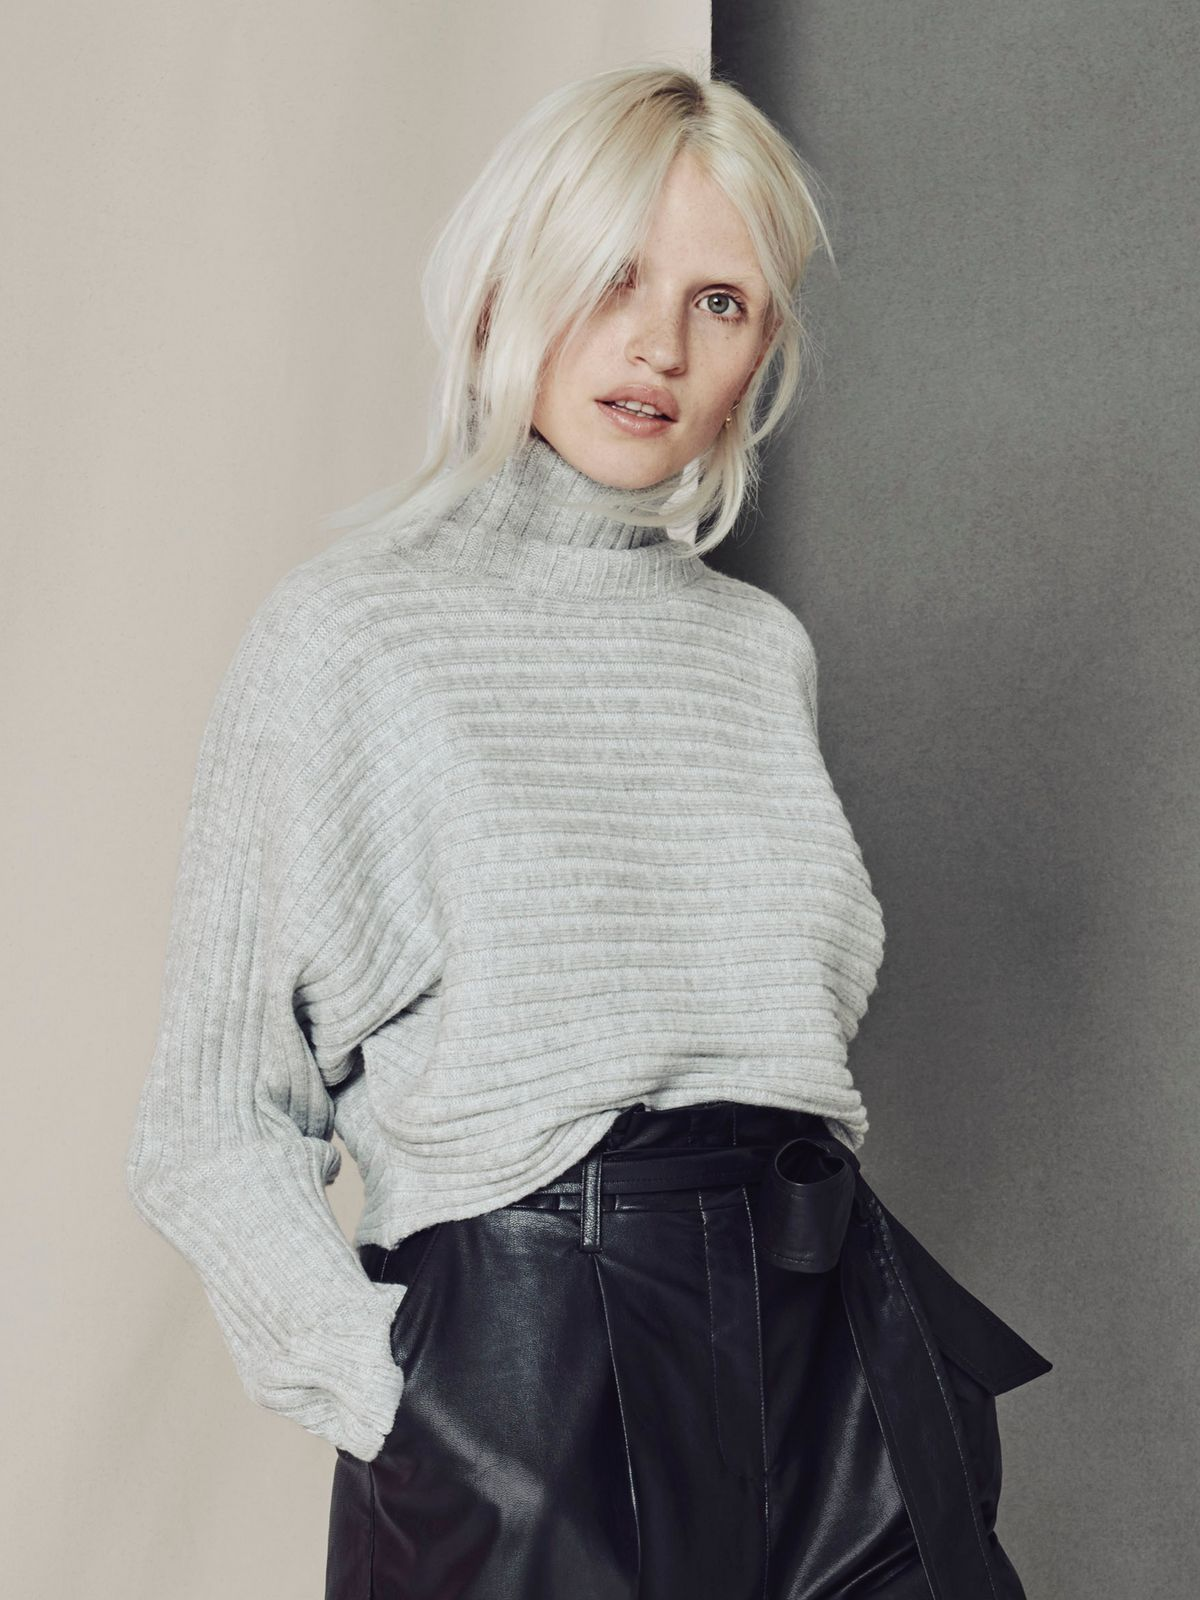 Women's Clothes | Women's Clothing & Fashion Online | New Look